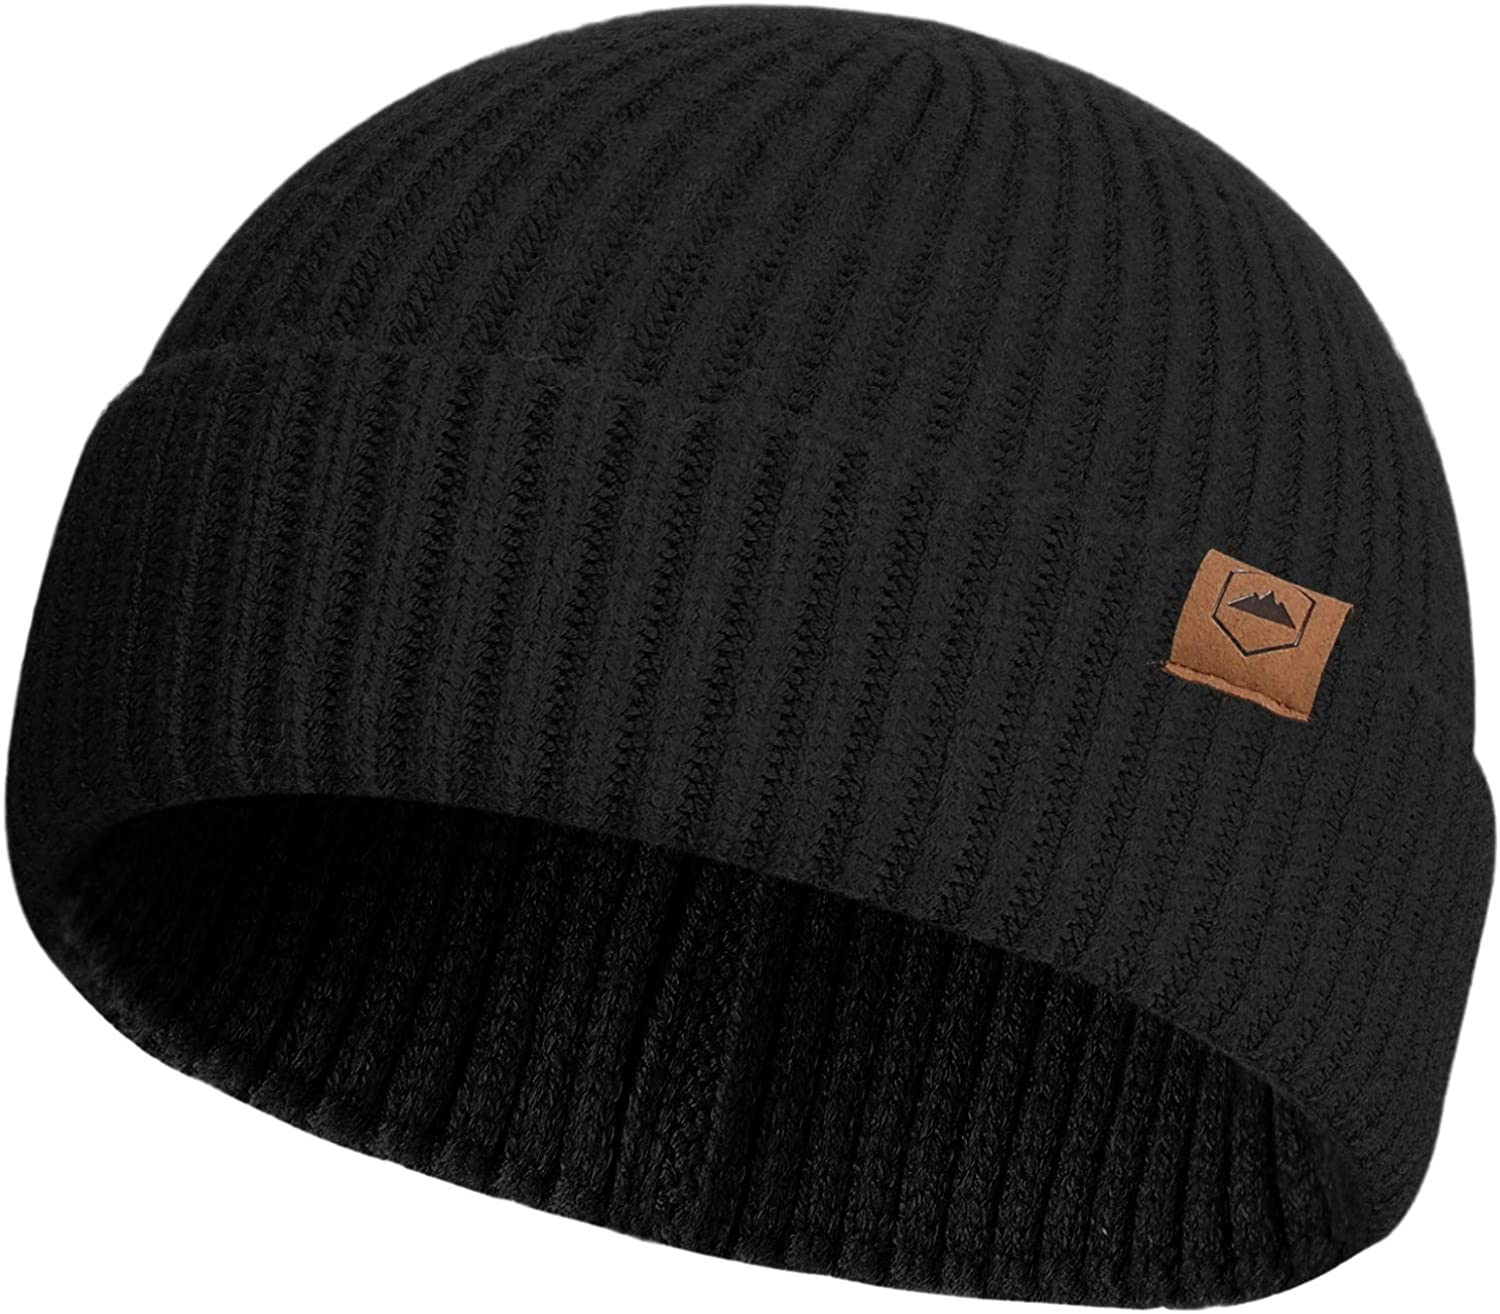 Knit Outlet SALE Beanie Winter Hats for Men Stretch Women - Ranking TOP8 Soft and Warm